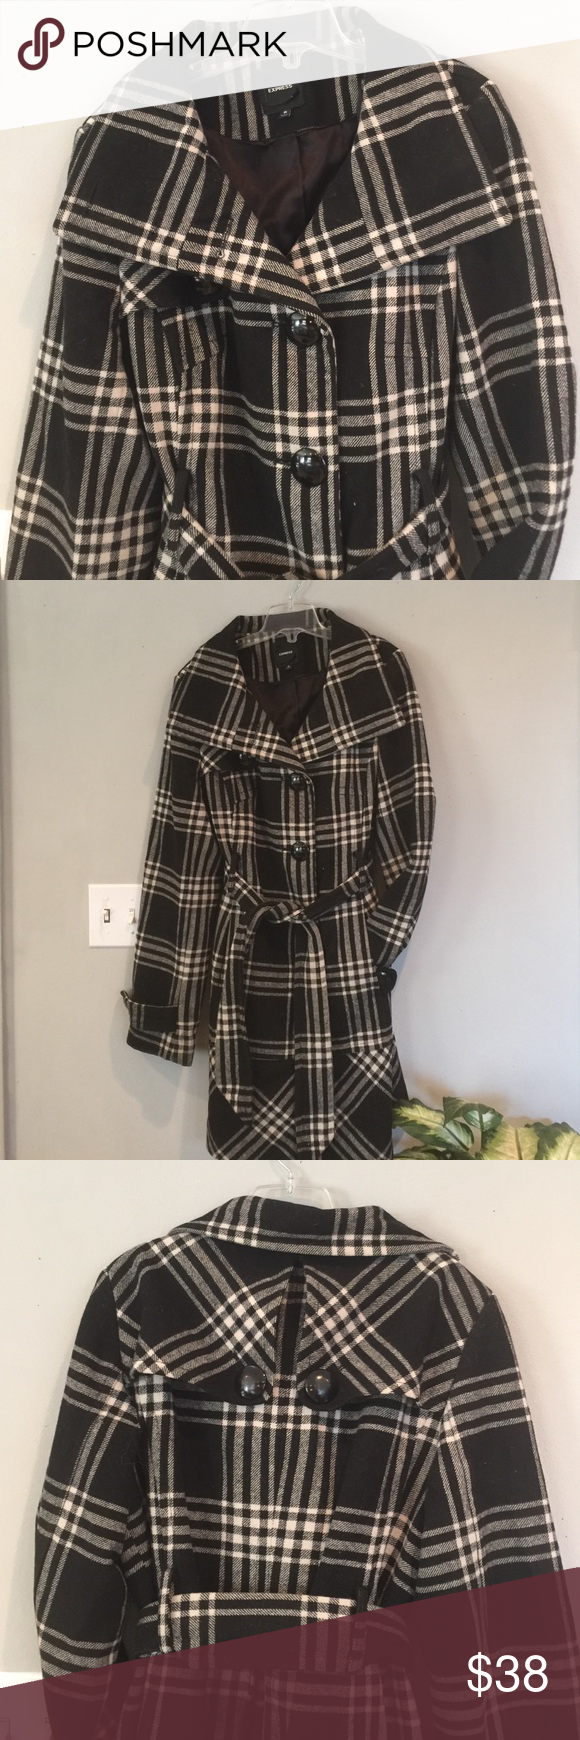 EXPRESS Wool Coat sz Medium Very good condition, Belted Waist, fully lined Express Jackets & Coats Trench Coats